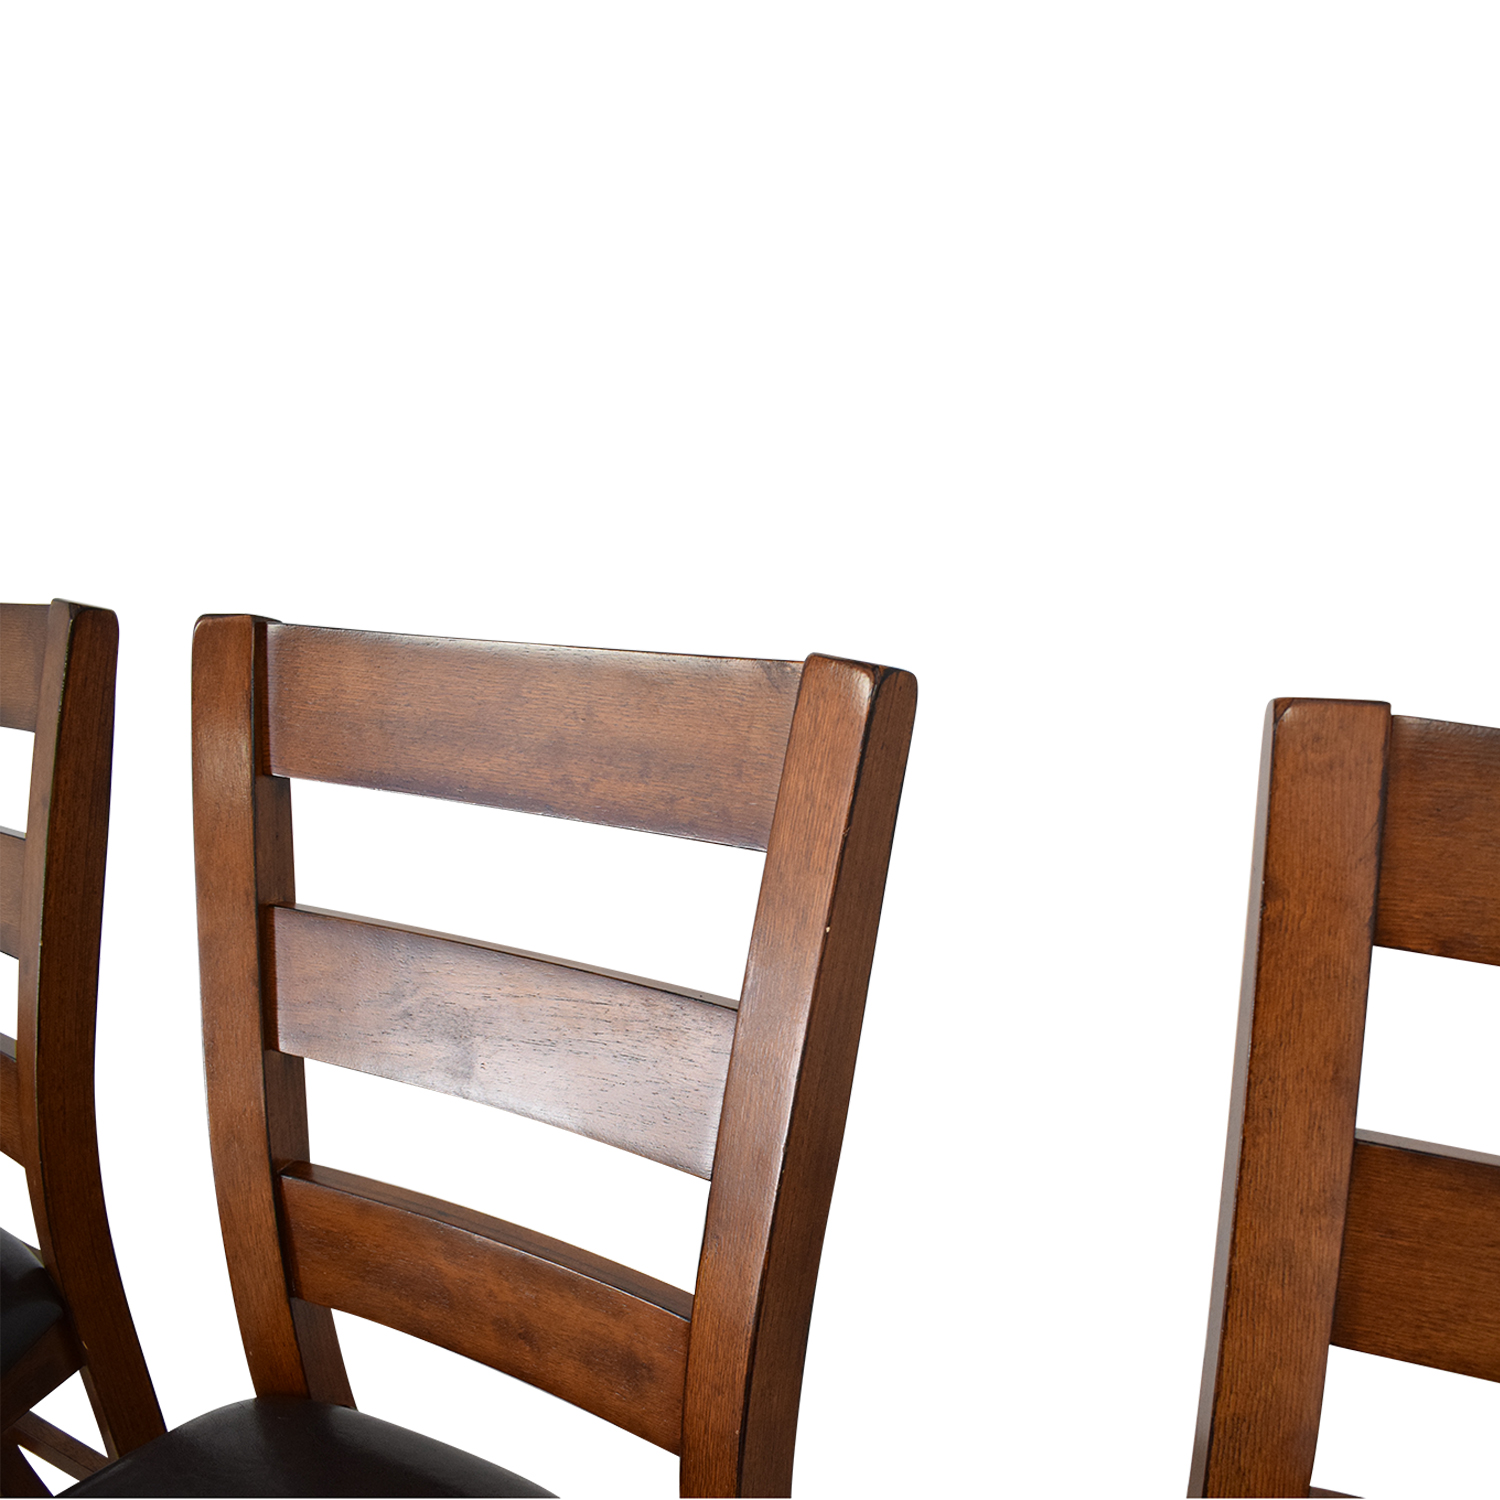 American Signature American Signature Ladder Back Dining Chairs dimensions